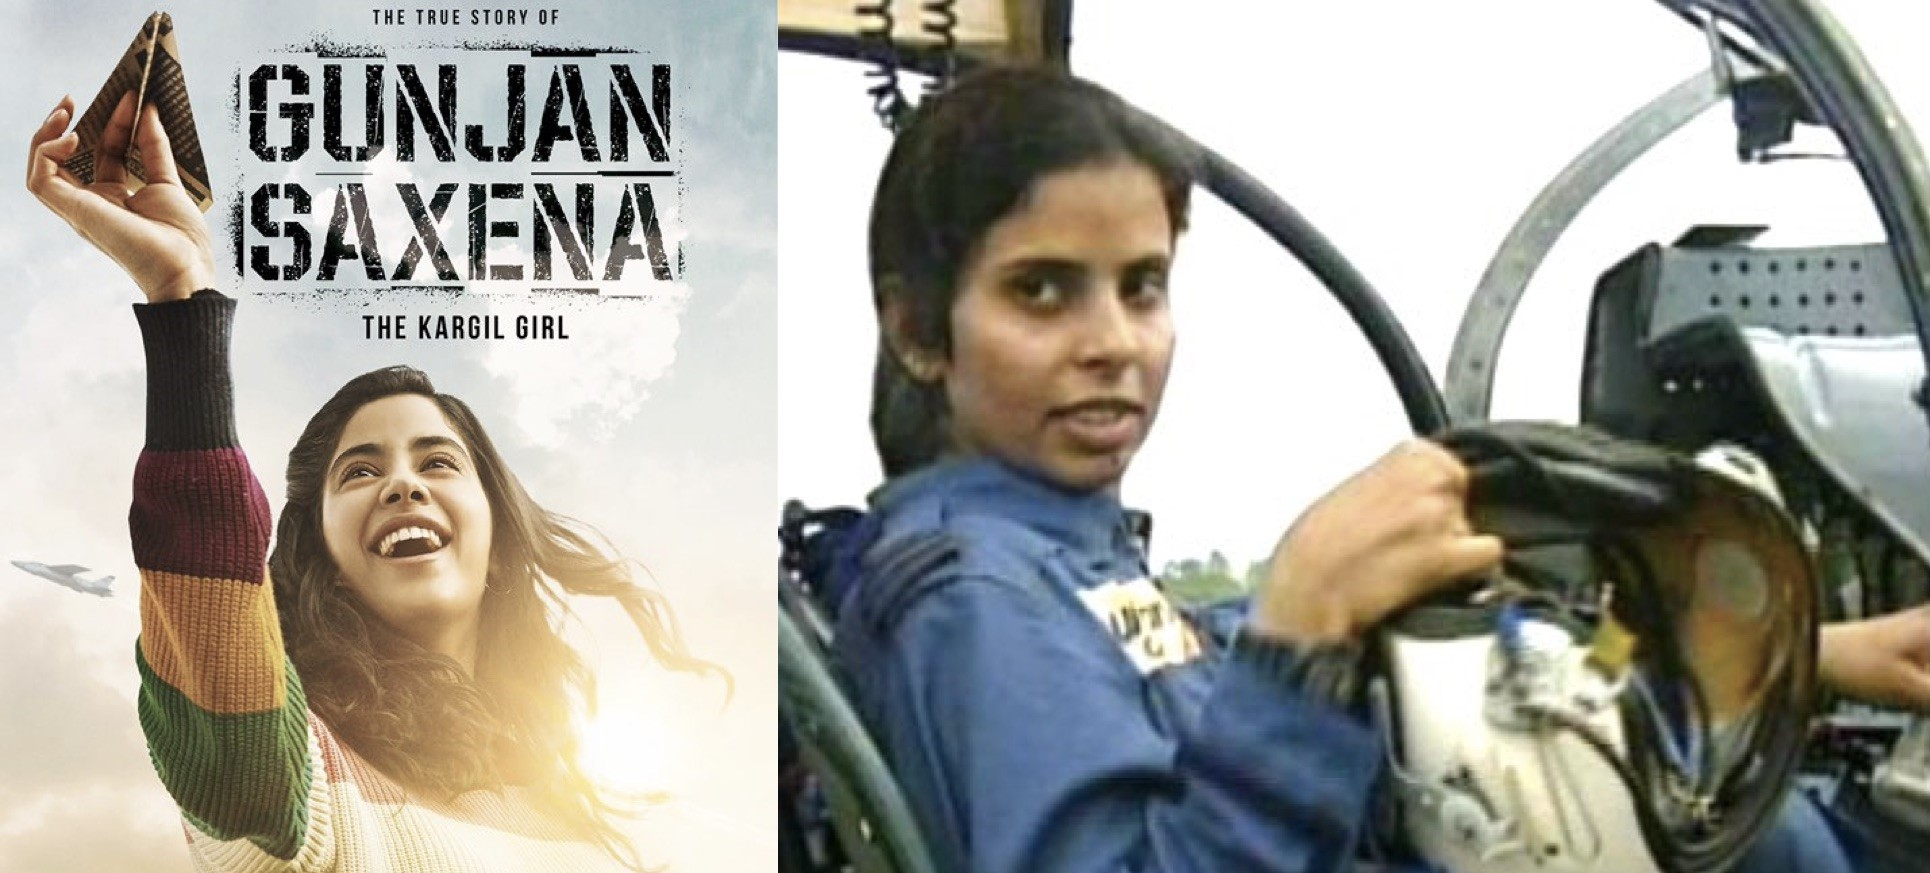 Gunjan Saxena 2020 India S Female Pilot S War Biopic And The Deeply Moving Story Of A Feminist Father And His Feisty Daughter Theunblog